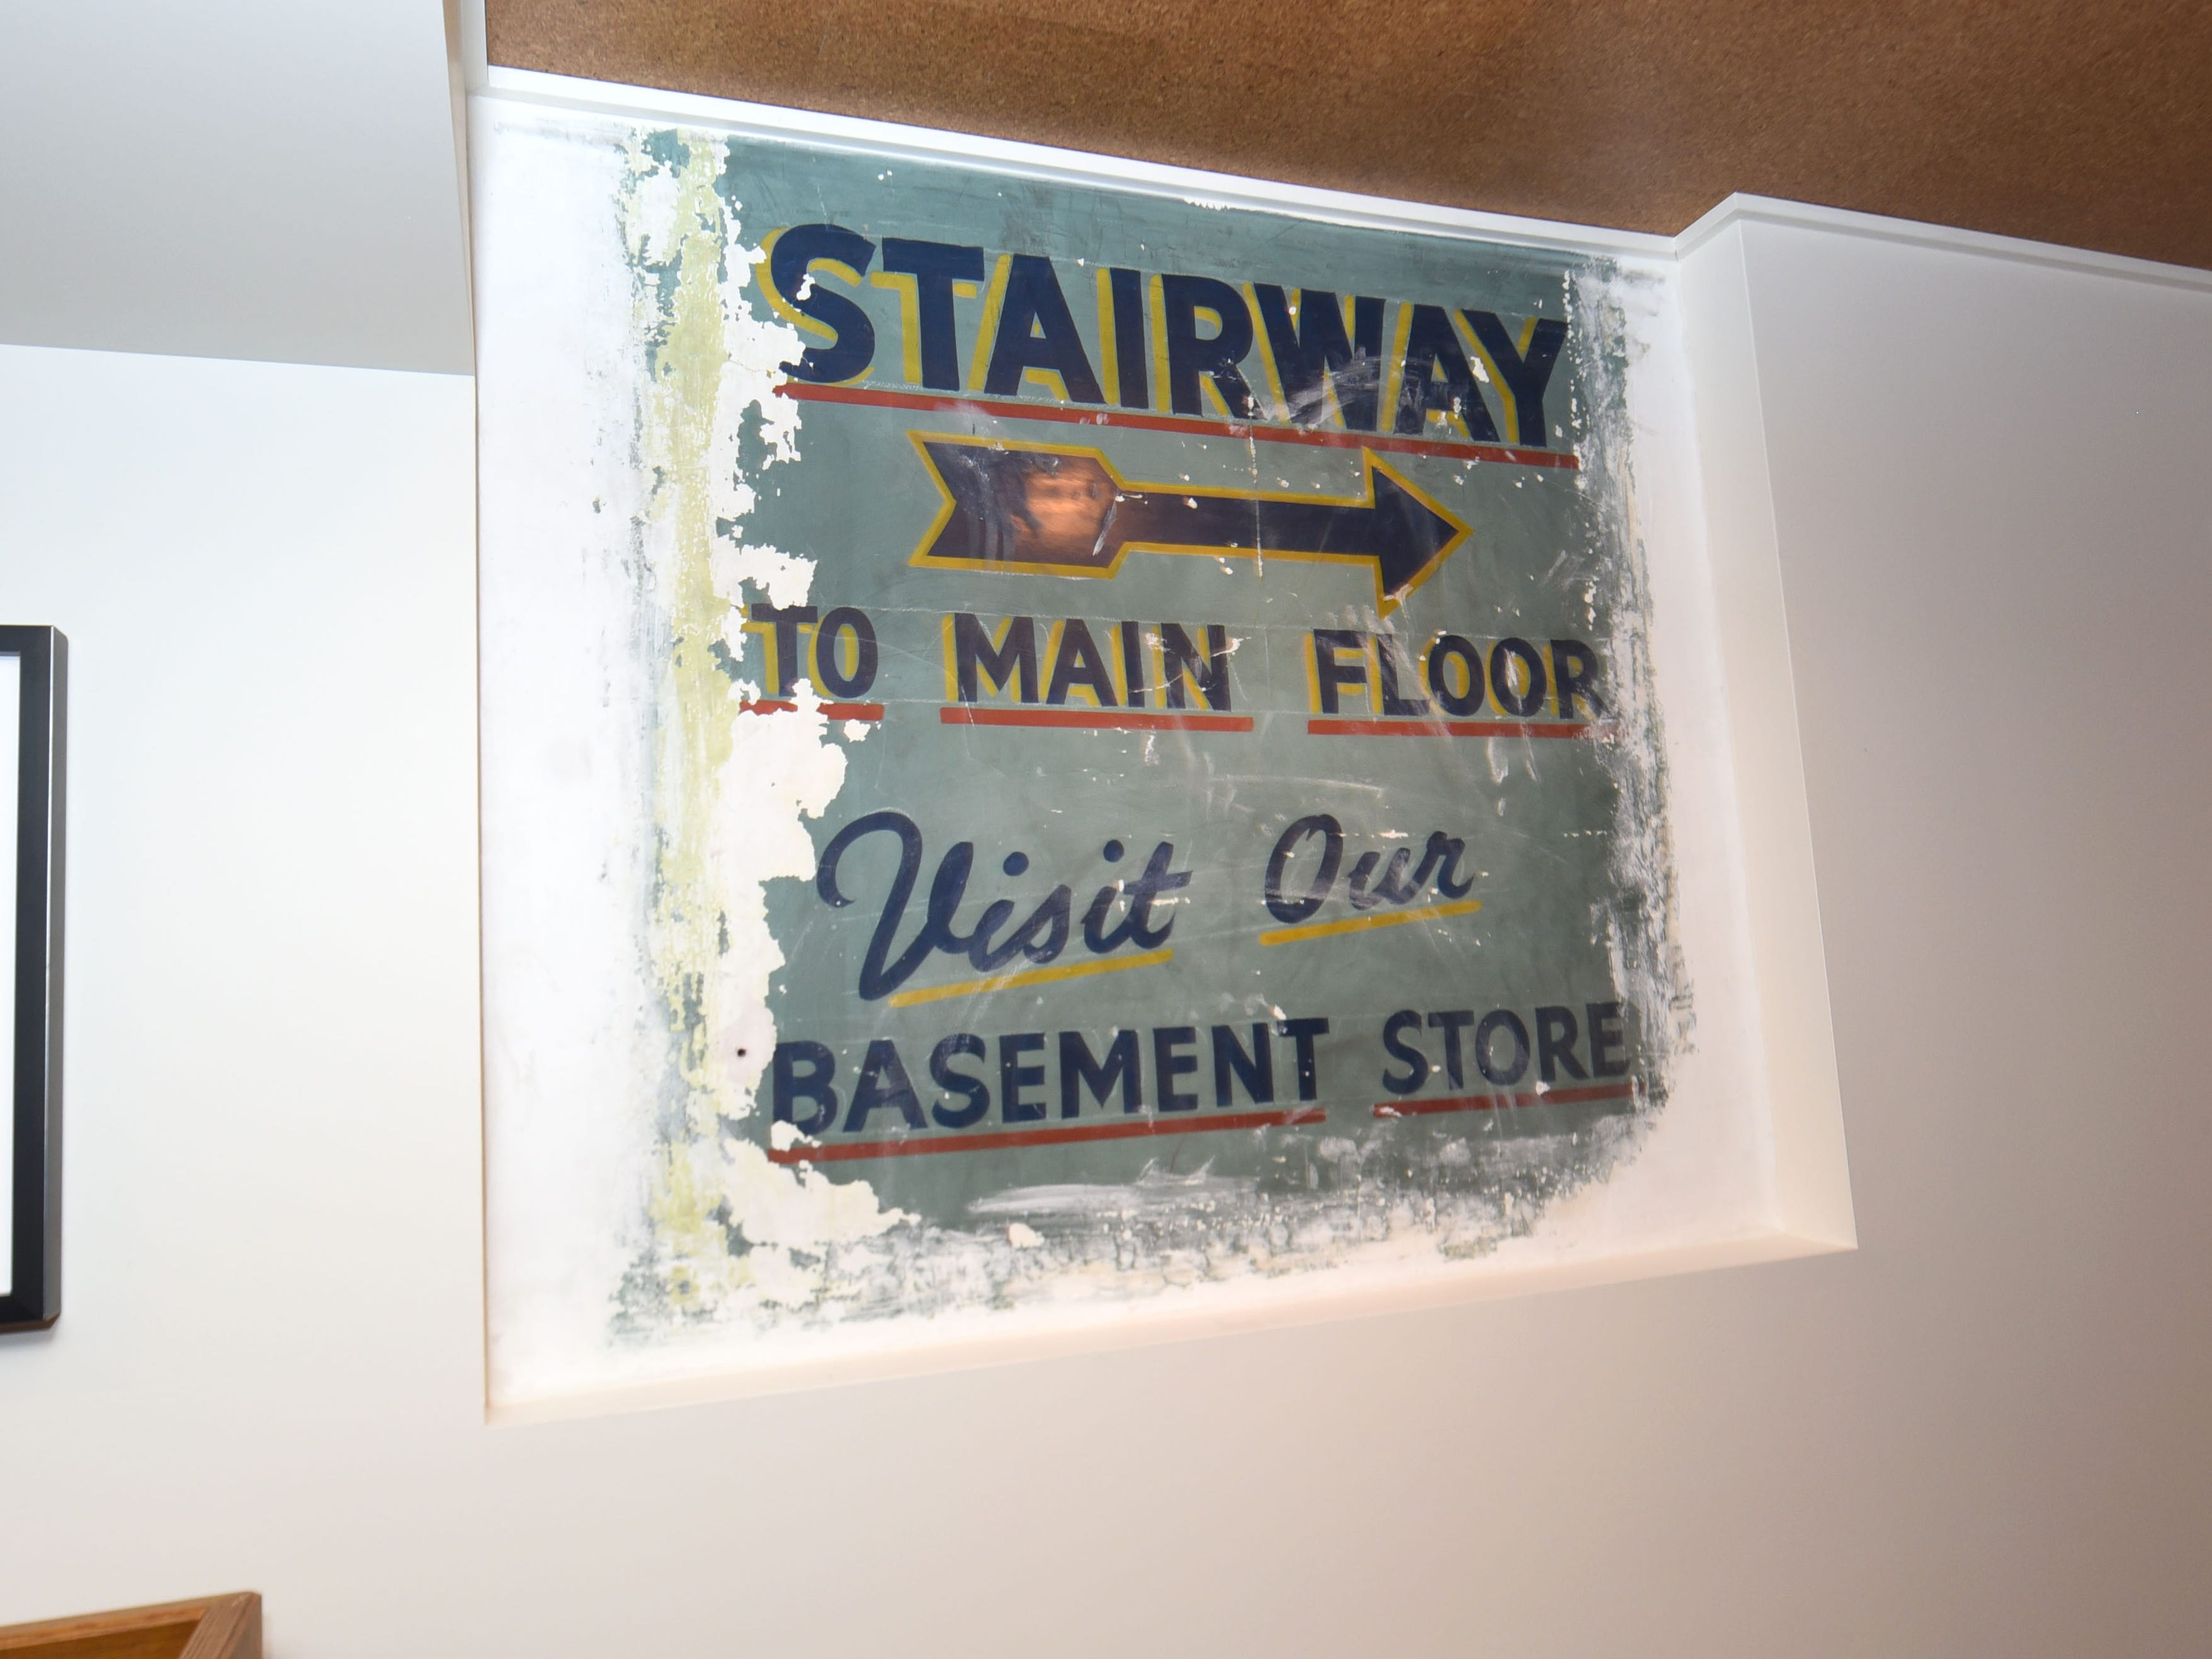 Vintage signage is seen in an upstairs lounge and guest reception area.